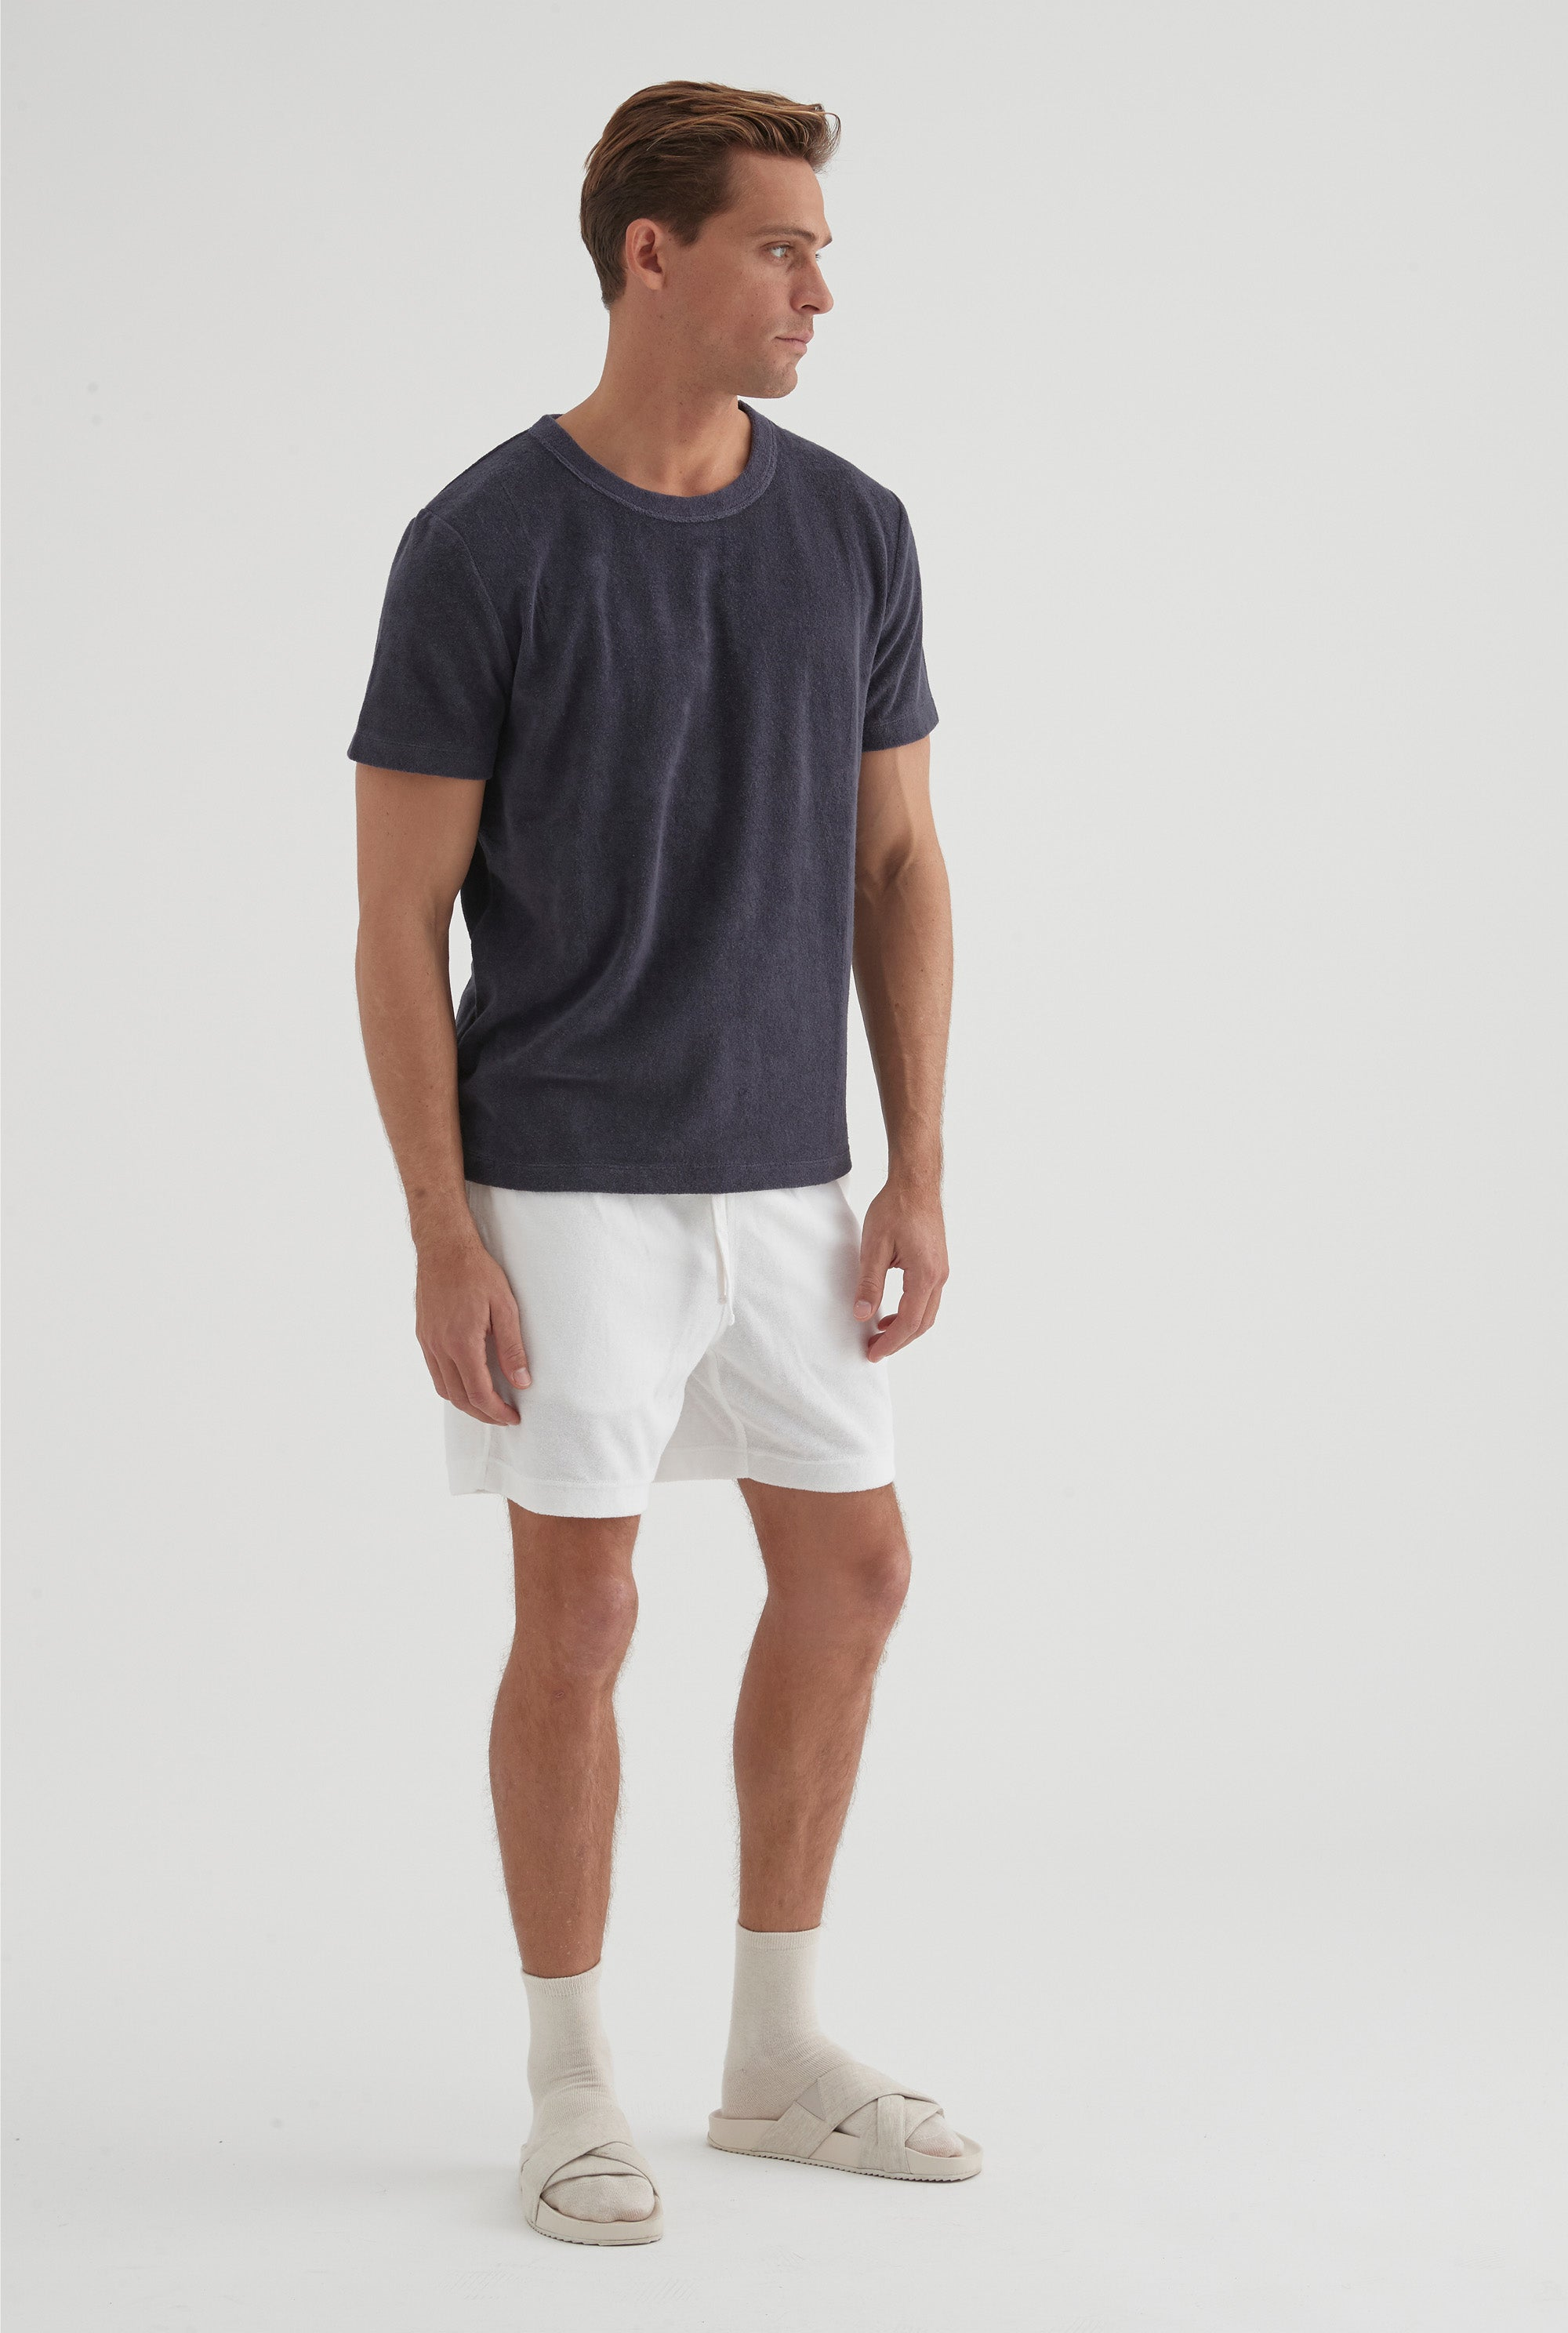 Terry Towel T-Shirt - Navy